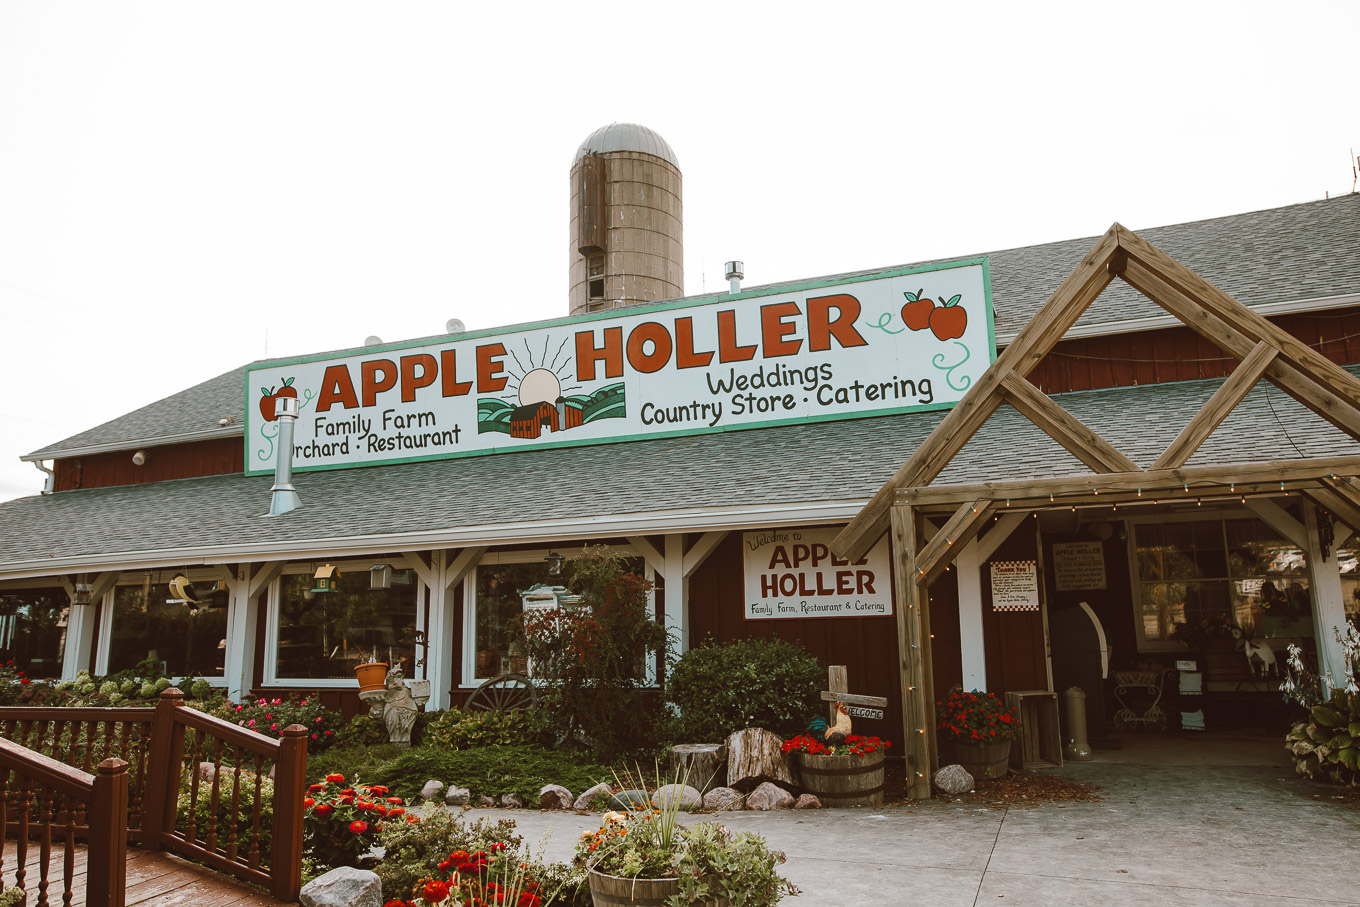 Apple Picking by popular Chicago lifestyle blog, Glass of Glam: image of the Apple Holler family farm, orchard, and restaurant building.